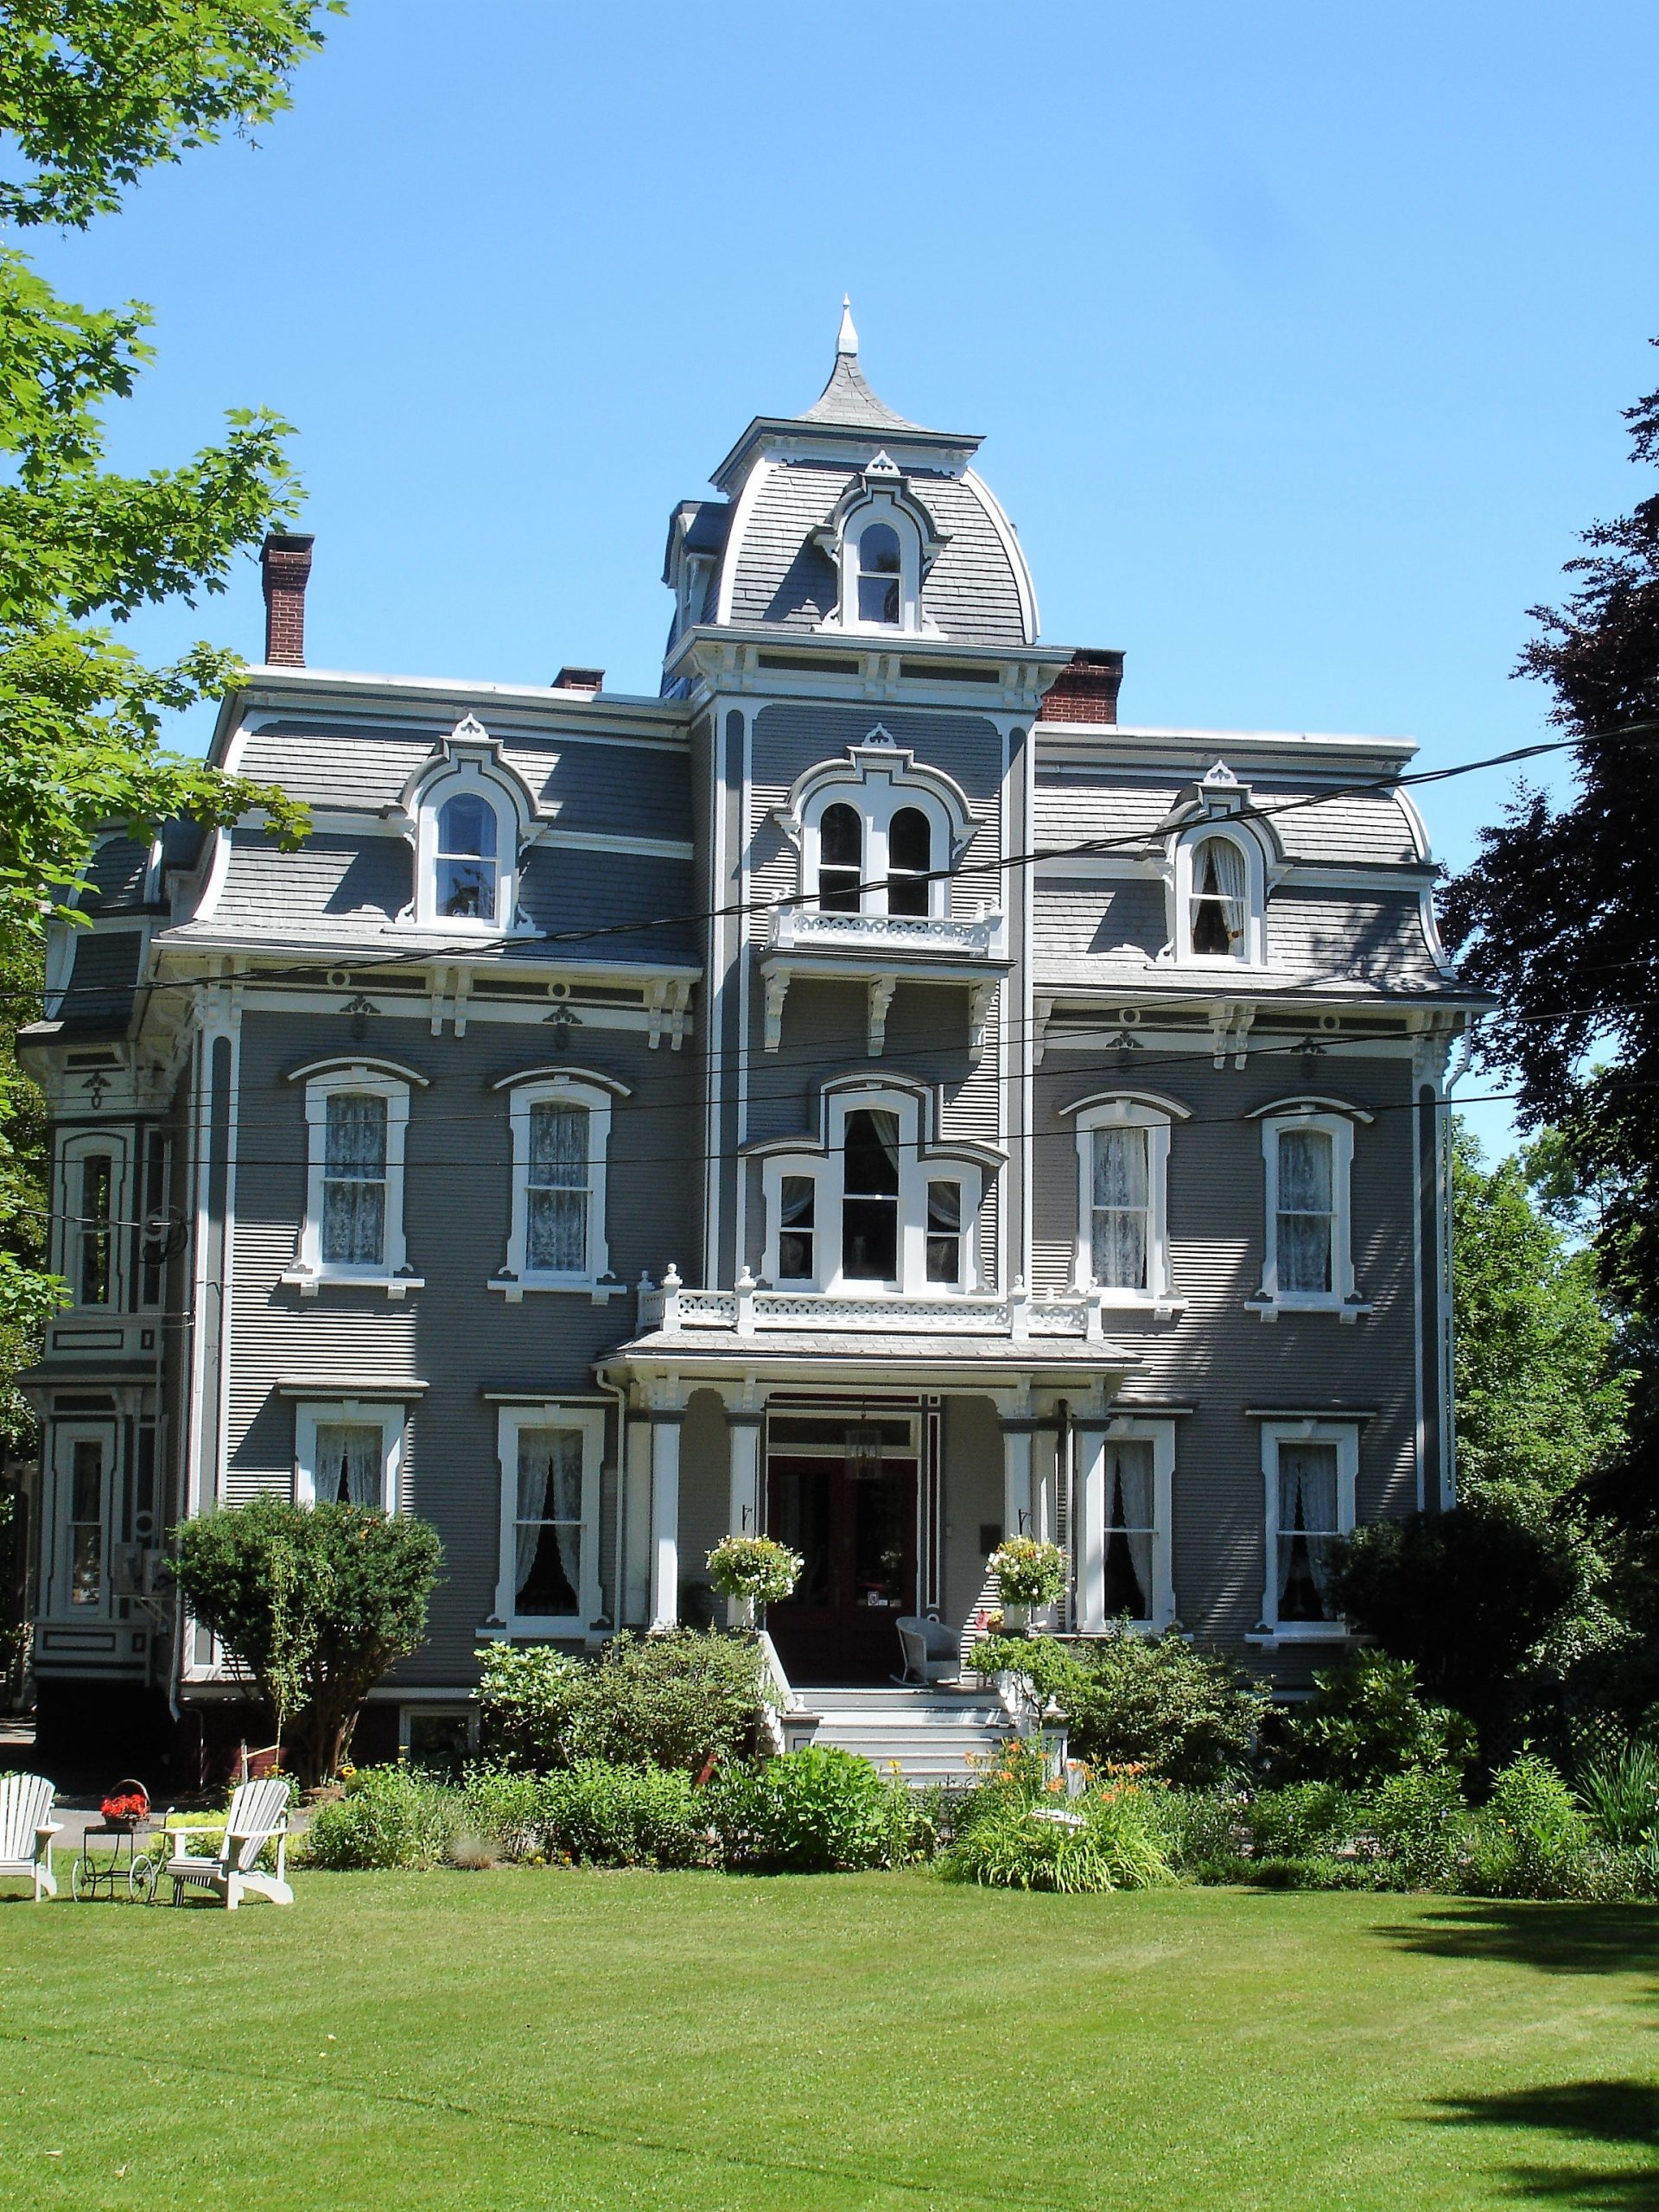 One of the many stately Victorian Homes in Annapolis Royal Nova Scotia. Some have been converted to marvelous B & B's